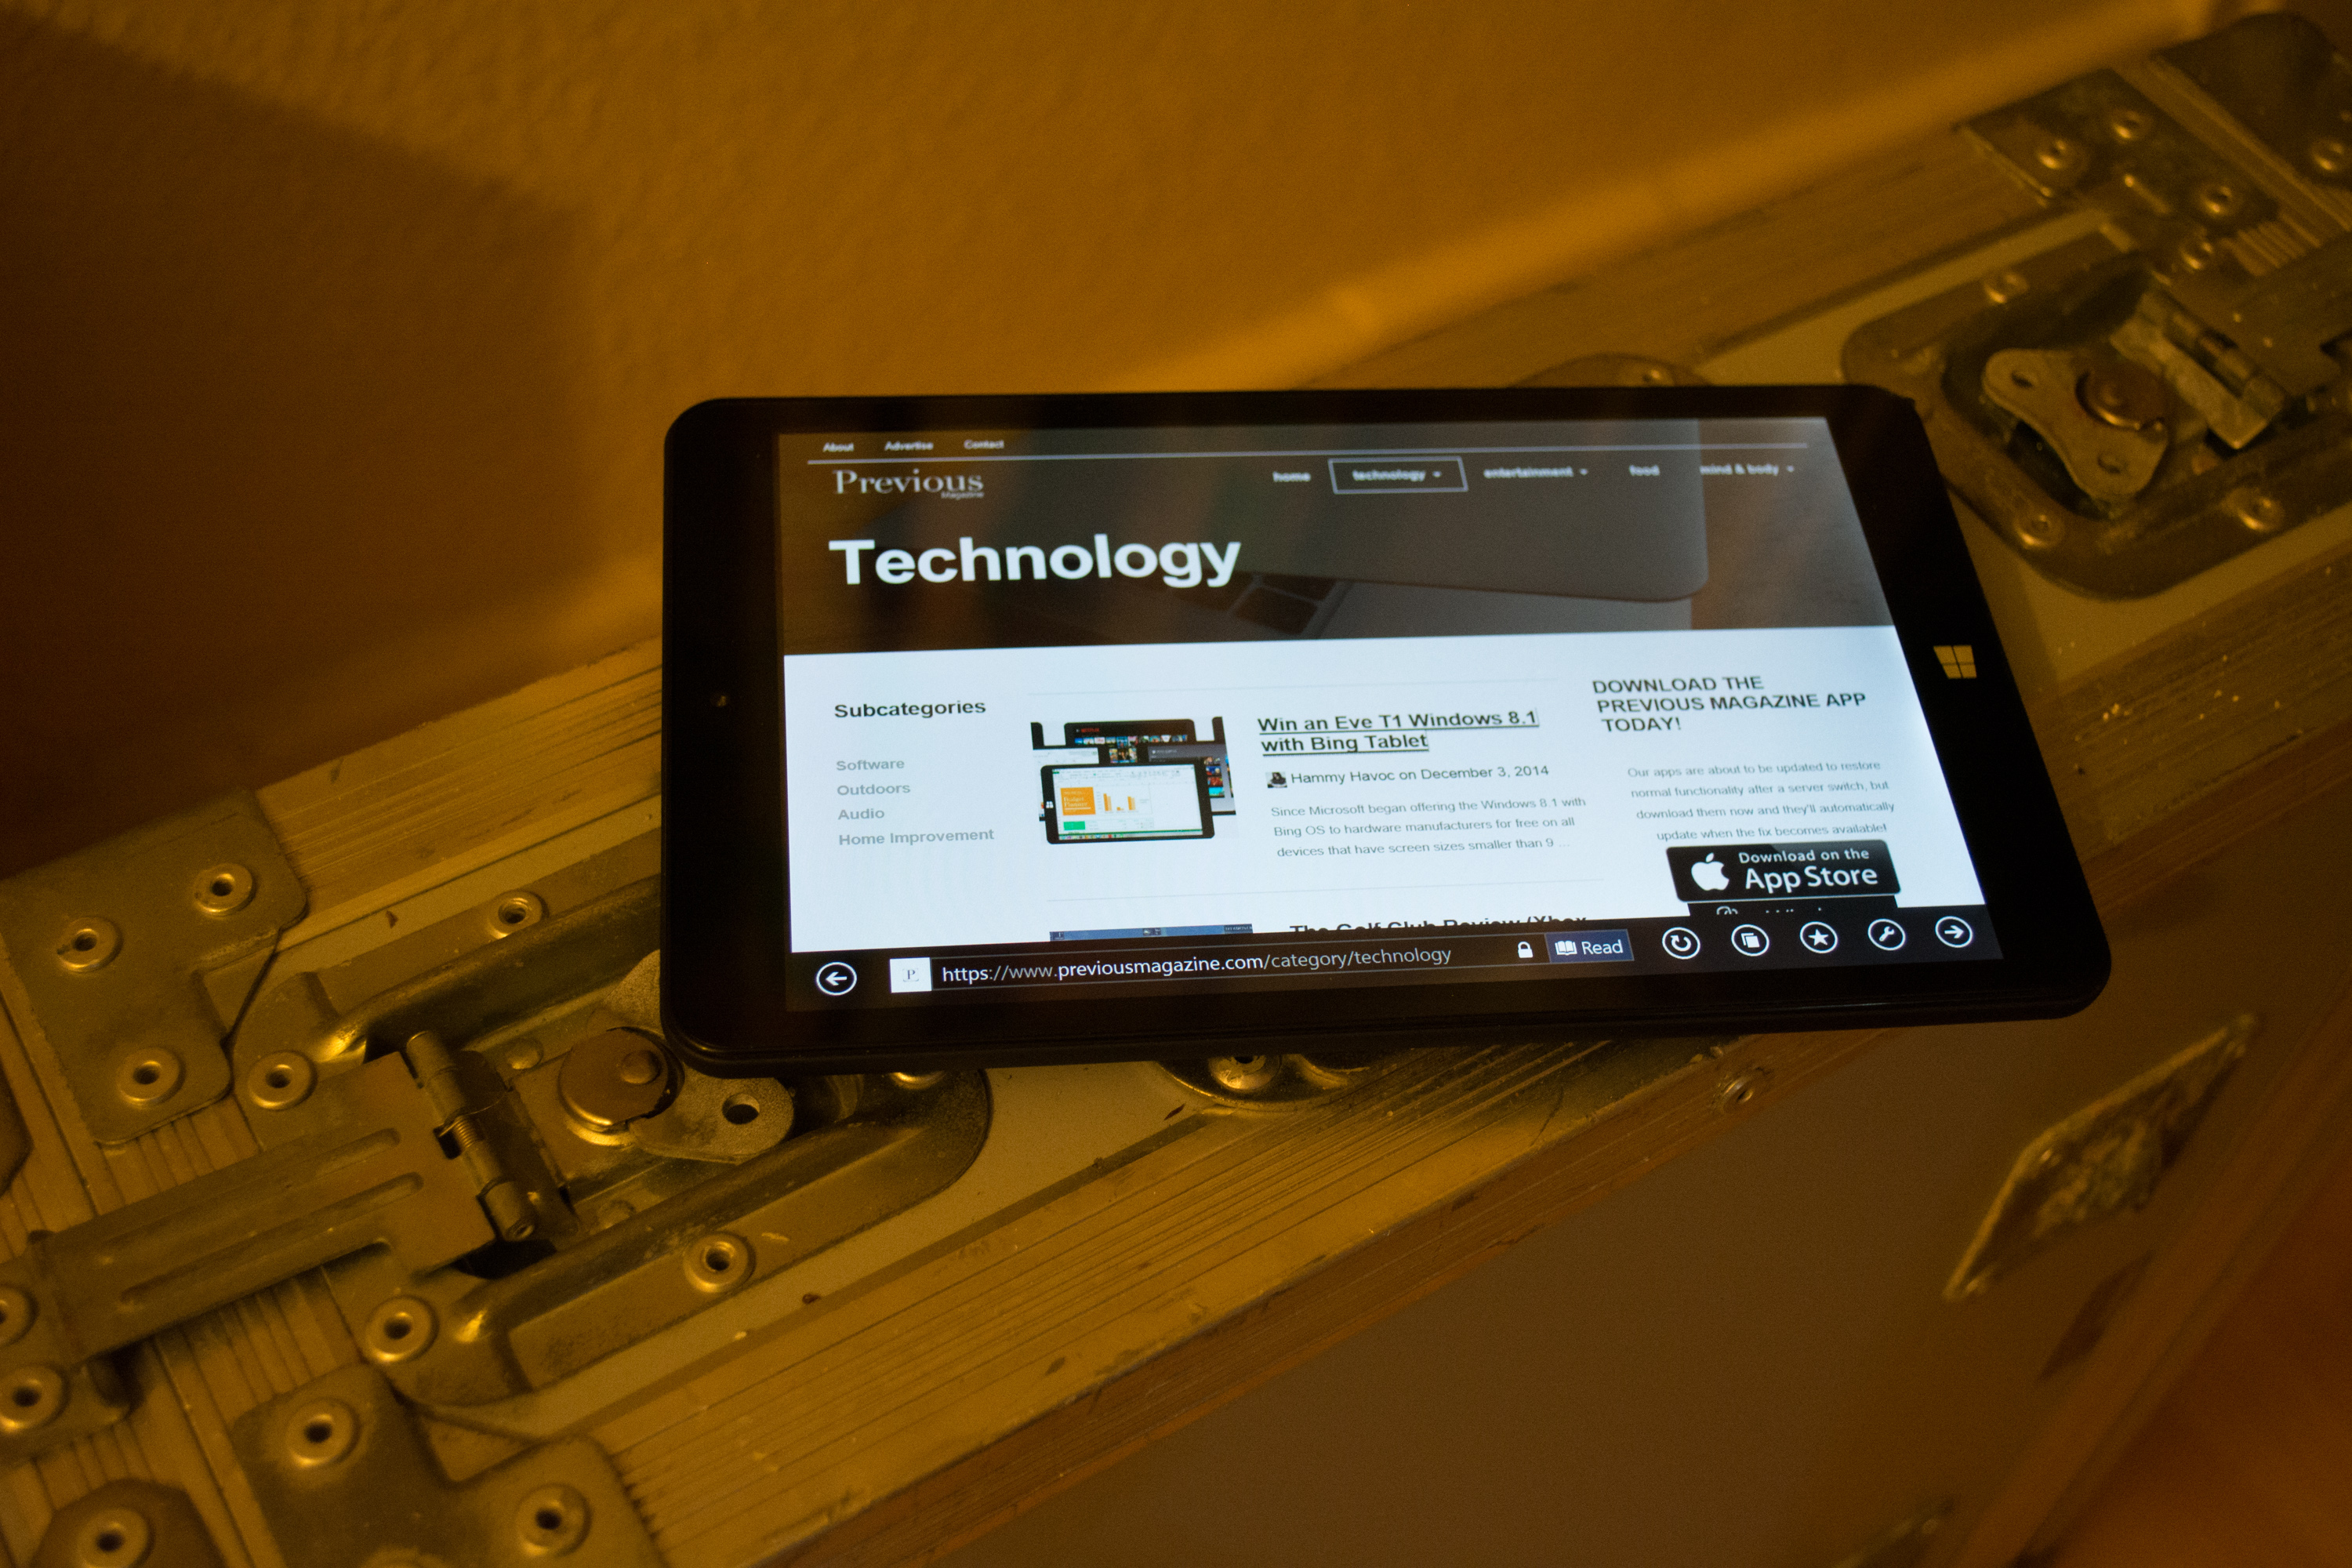 Eve T1 tablet showing the Previous Magazine website on top of flightcase